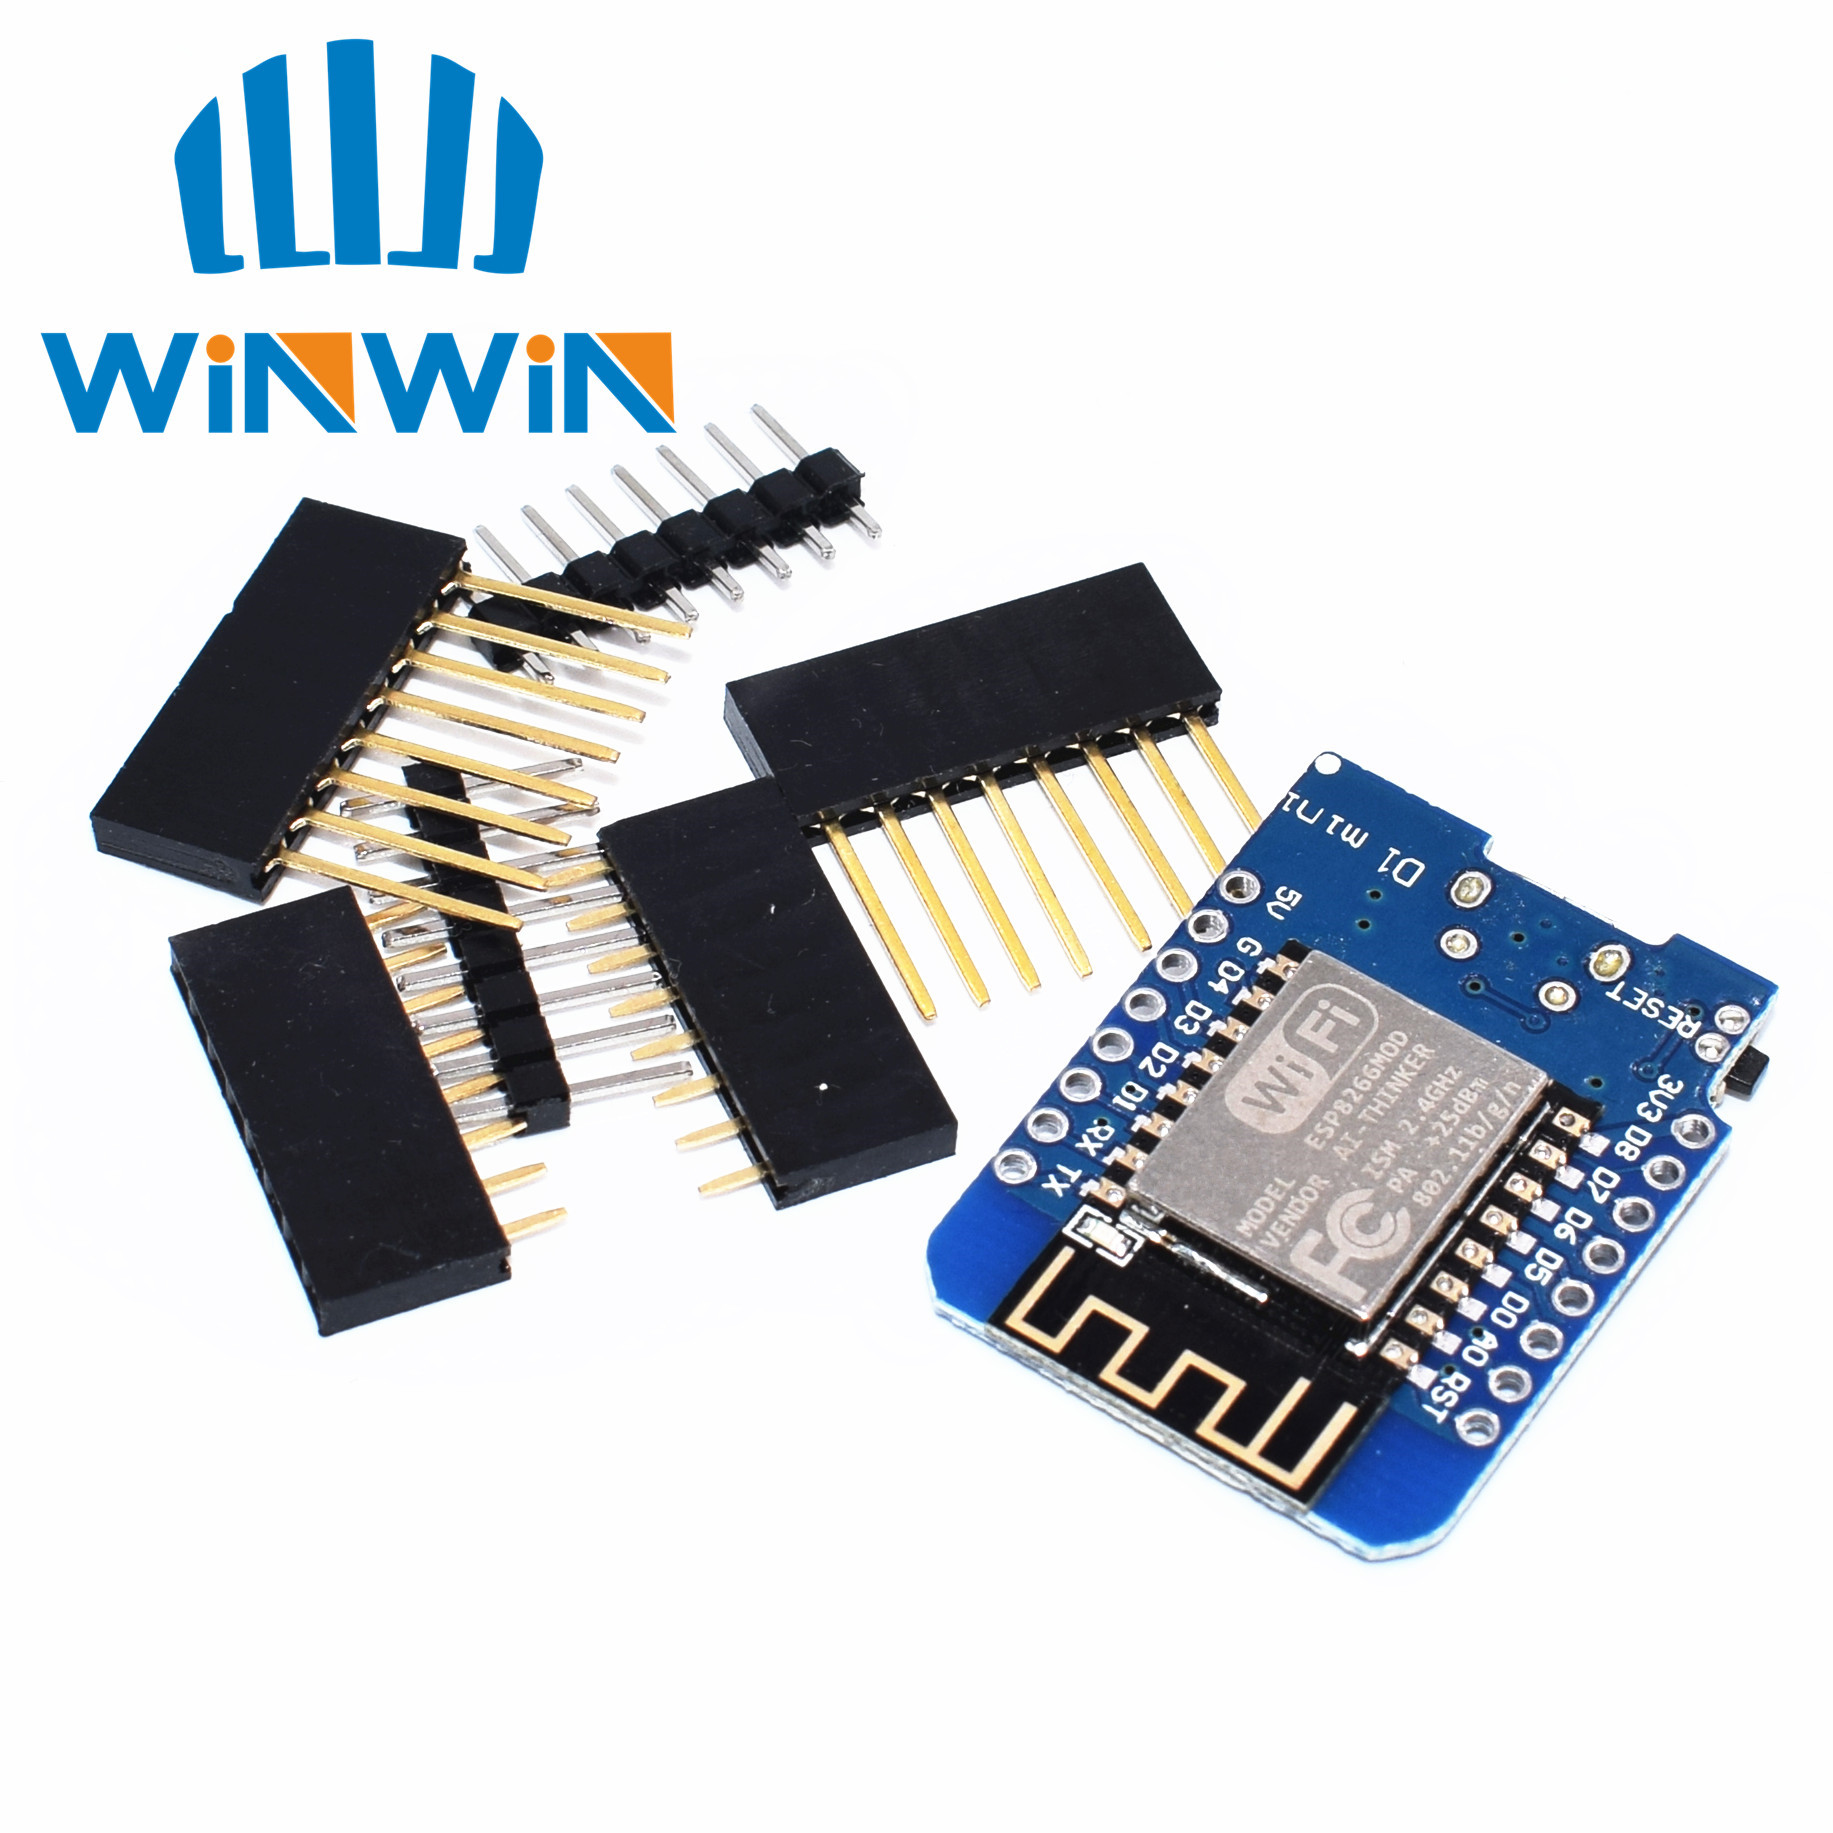 D1 mini - Mini NodeMcu 4M bytes Lua WIFI Internet of Things development board based ESP8266 WeMos wemos d1 esp wroom 02 esp8266 nodemcu wifi module with 18650 battery charging